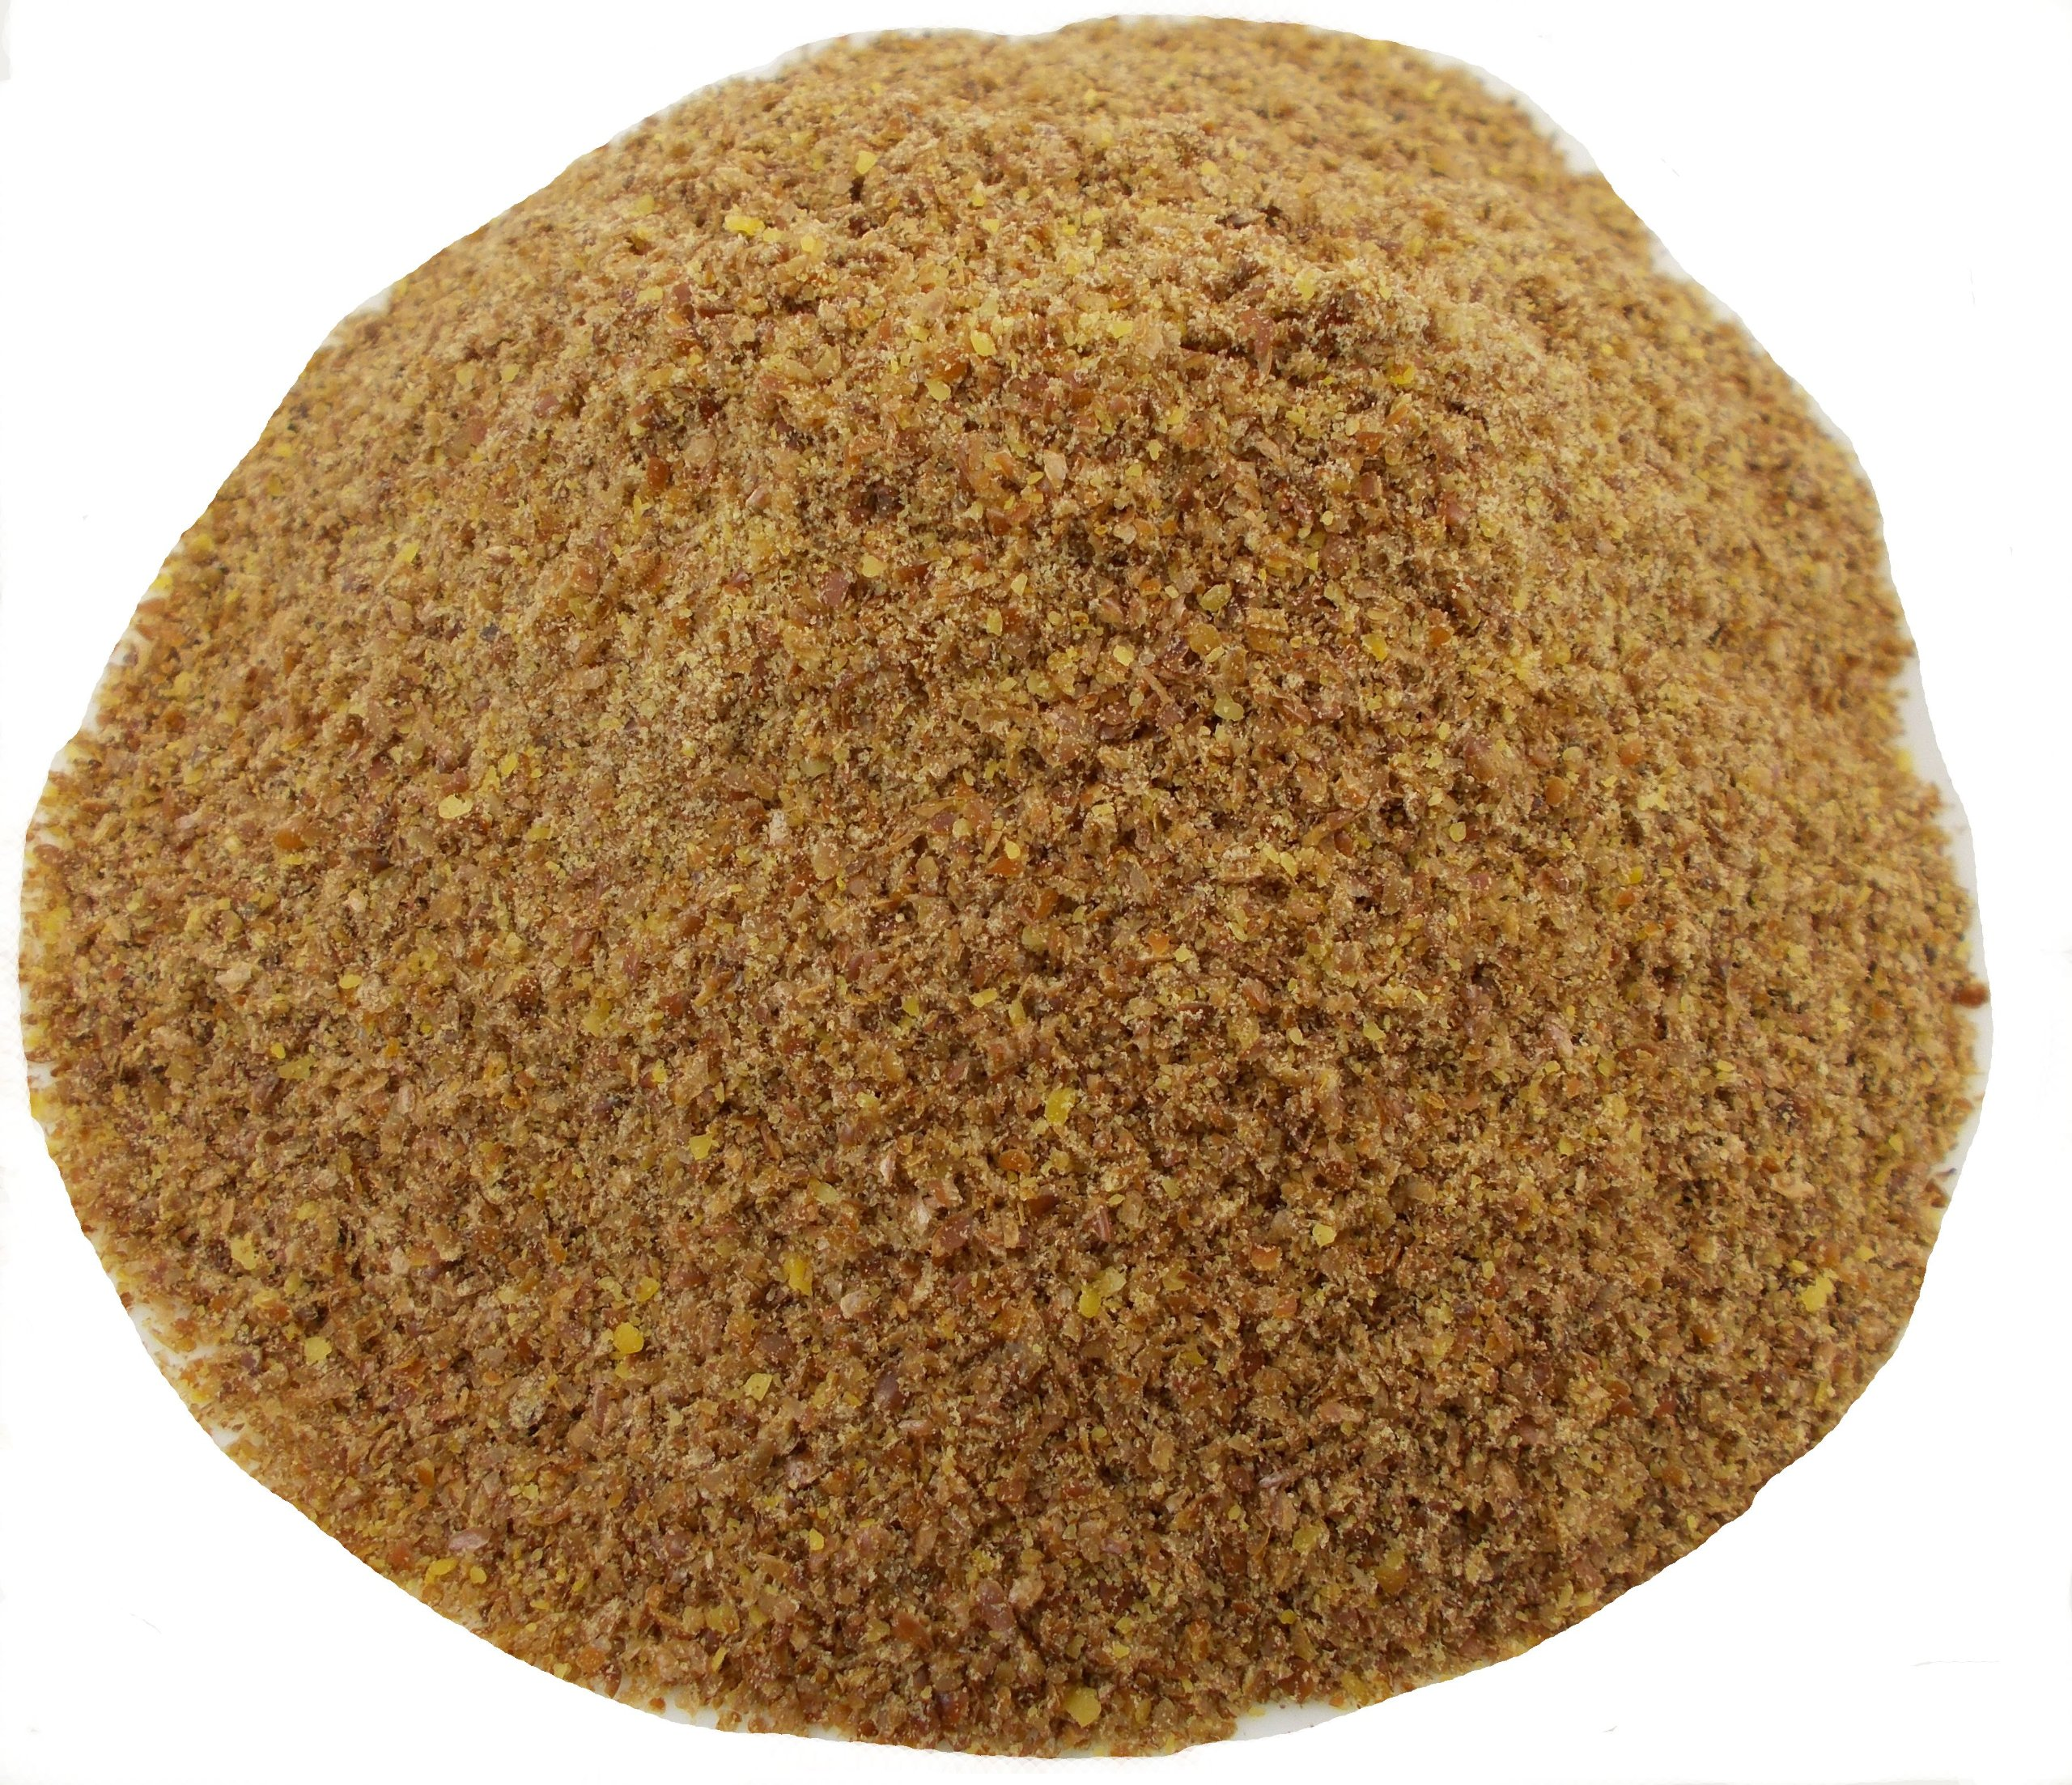 Healthy, All Natural, Ground Flax Seed Meal - 2 Lbs by YANKEETRADERS